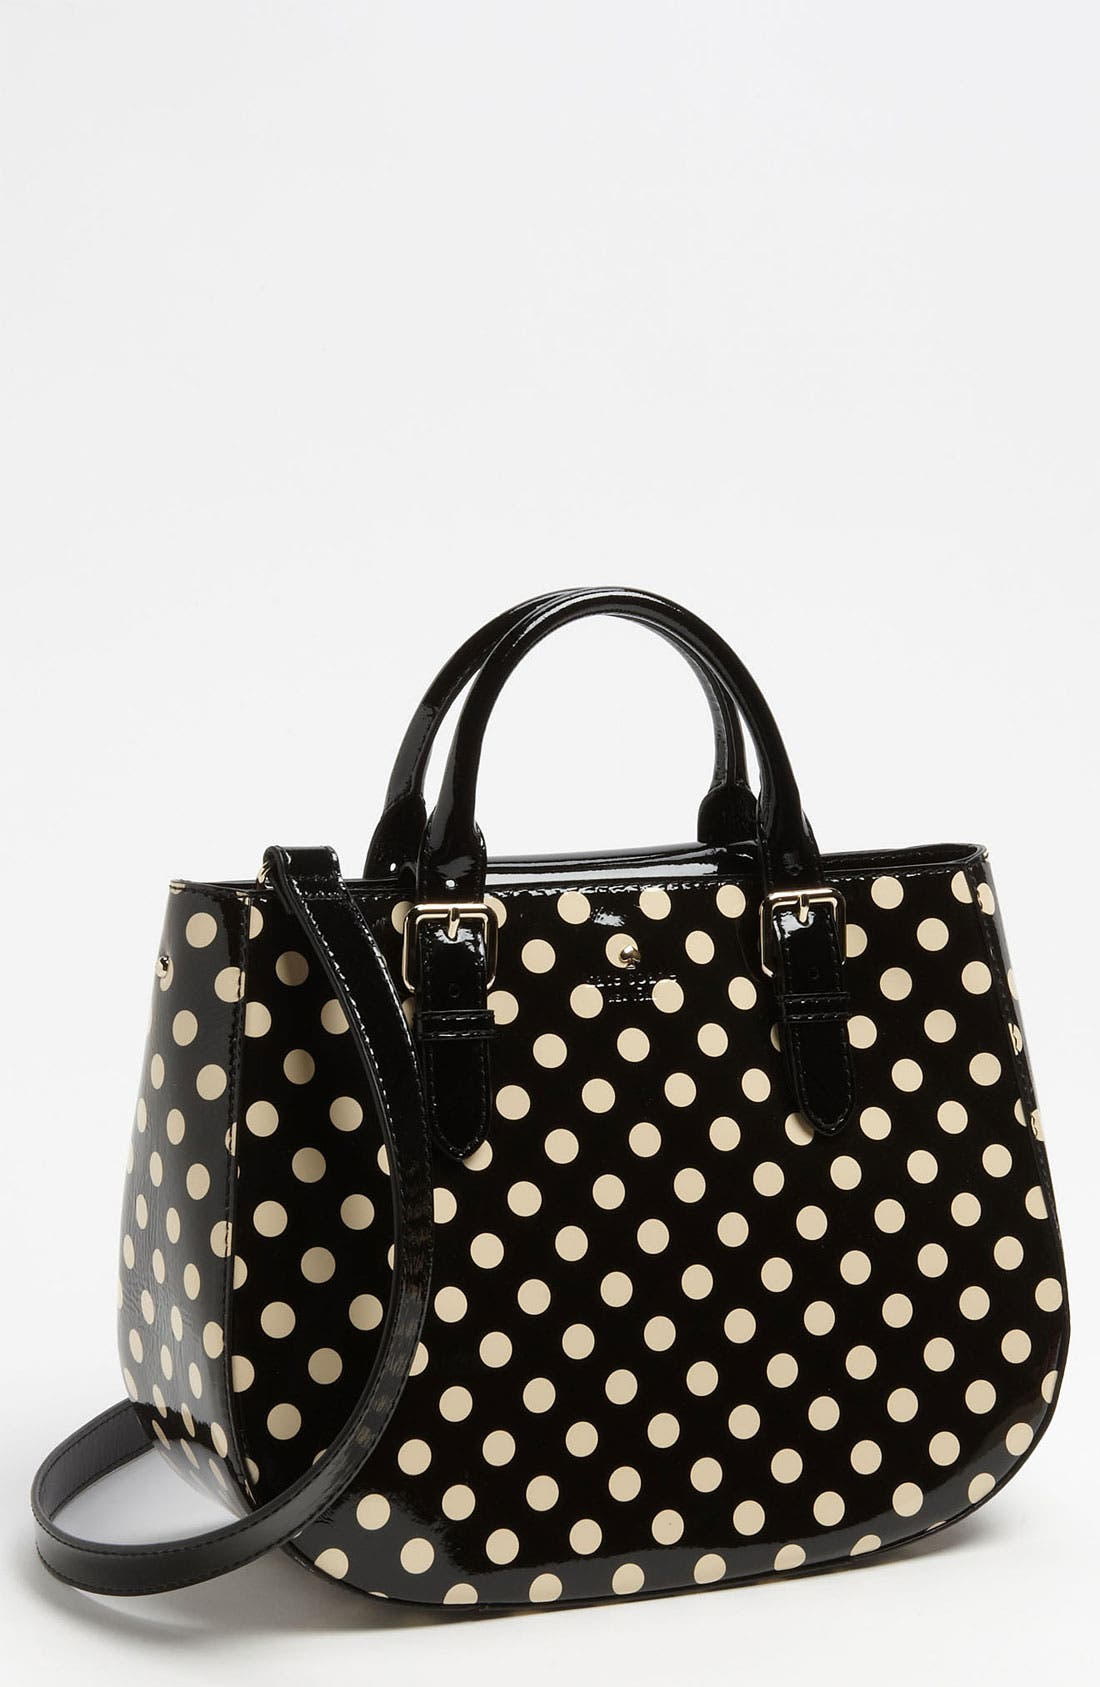 Main Image - kate spade new york 'sylvie' satchel